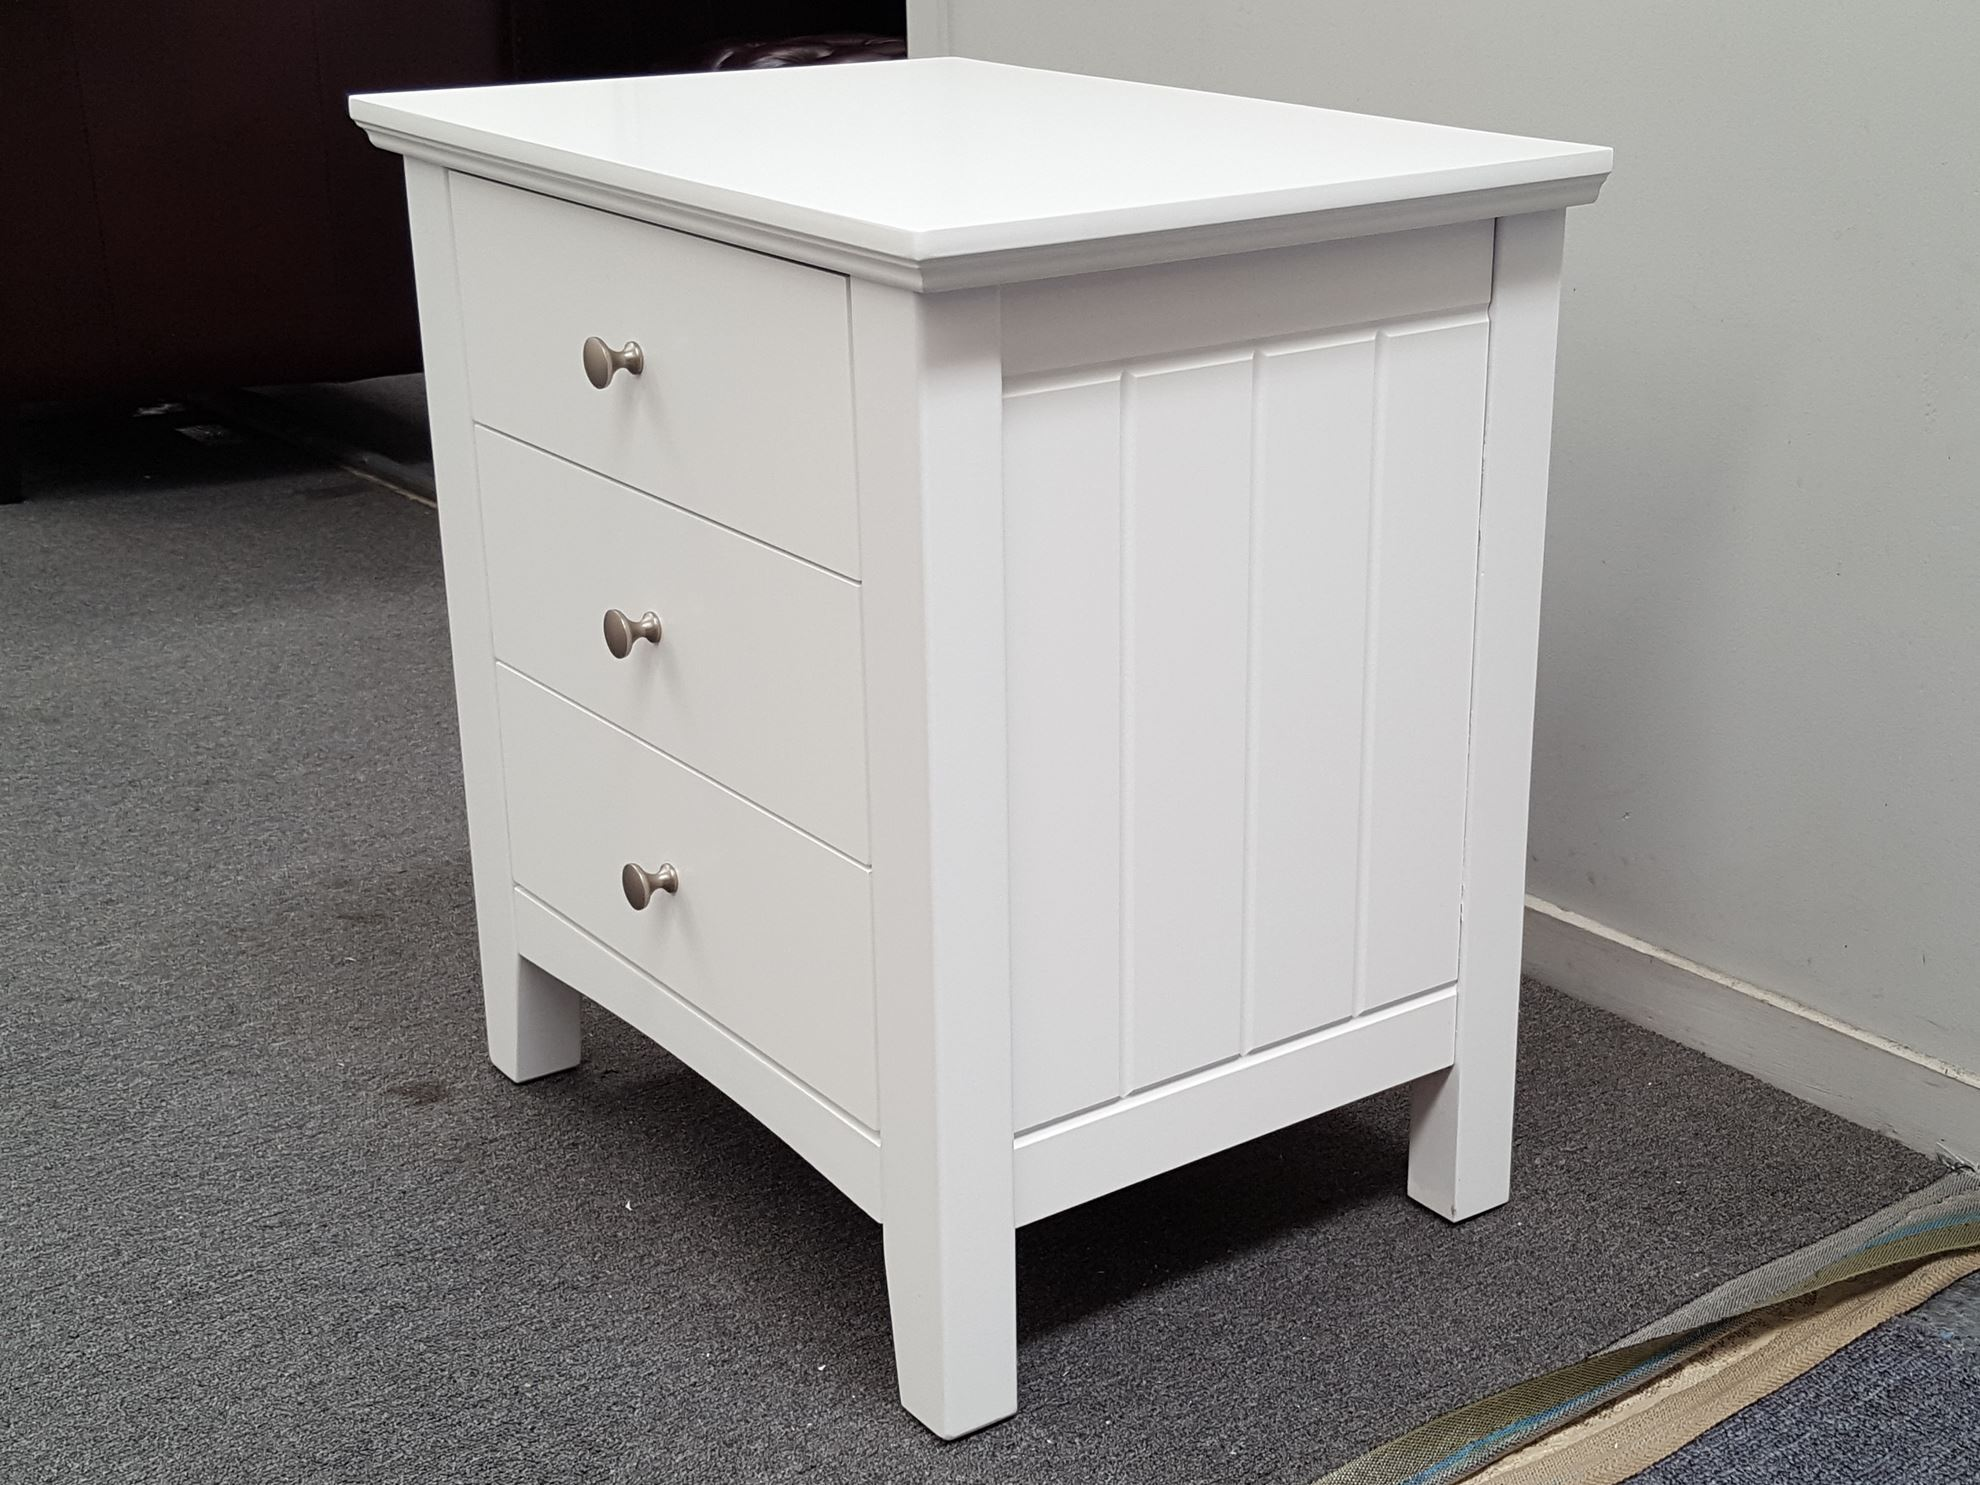 glass dalton silver small white top preusser end bedside beem hafley black gloss threshold brigitte drawer adeptus antique target side chest pine eton console storage grey accent